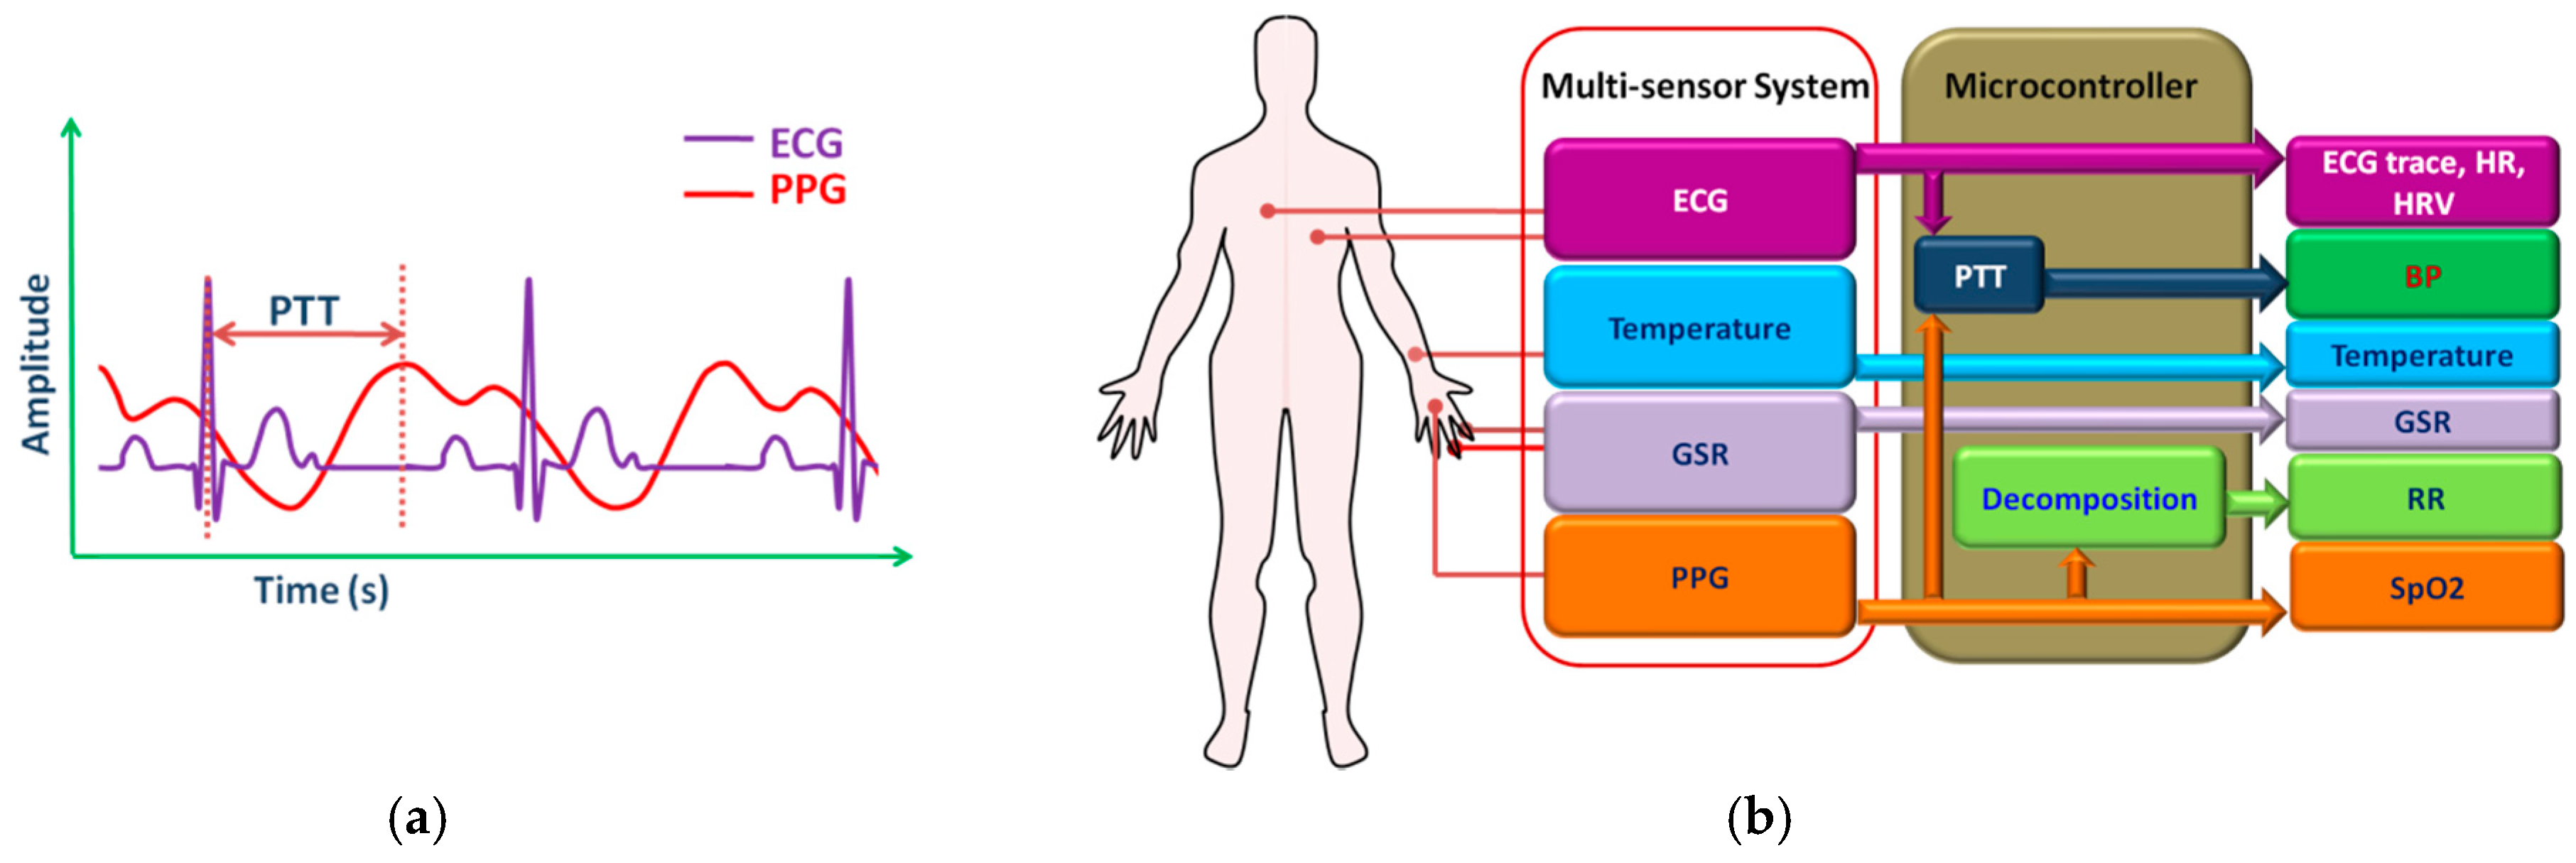 Sensors | Free Full-Text | Wearable Sensors for Remote Health